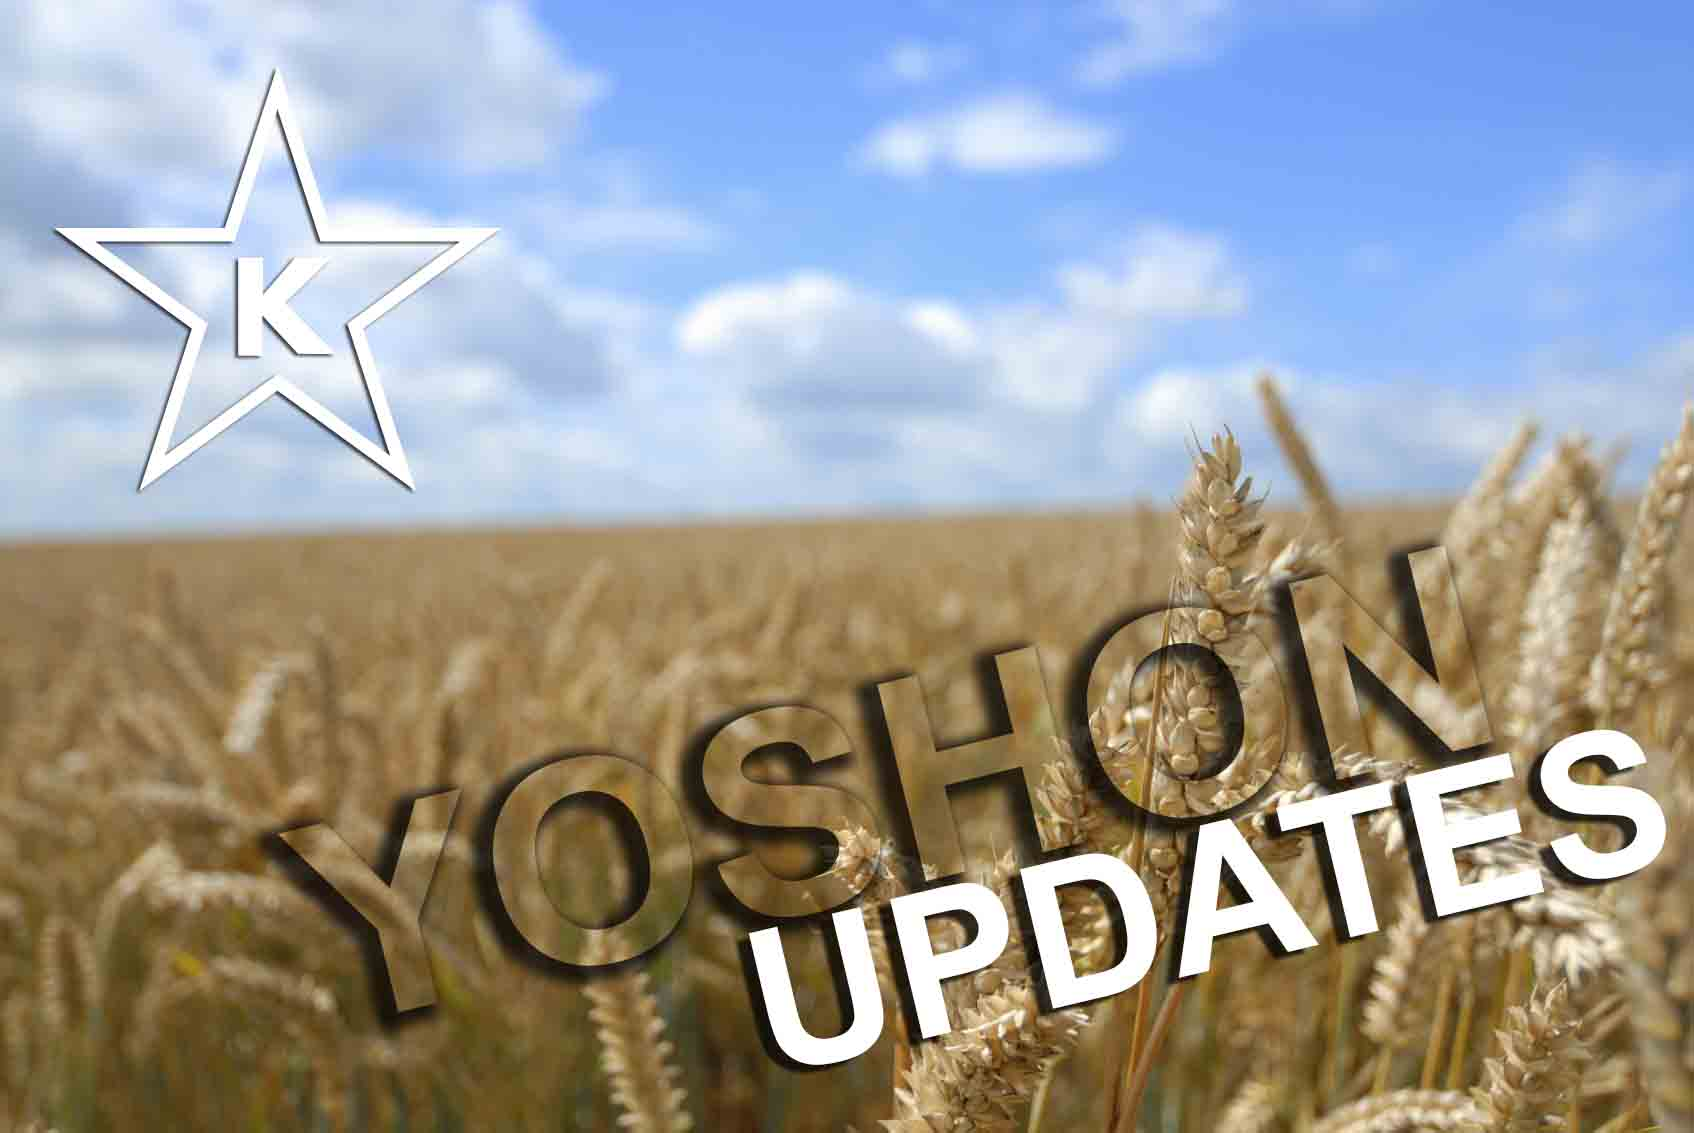 Yoshon Updates – as of September 1, 2020